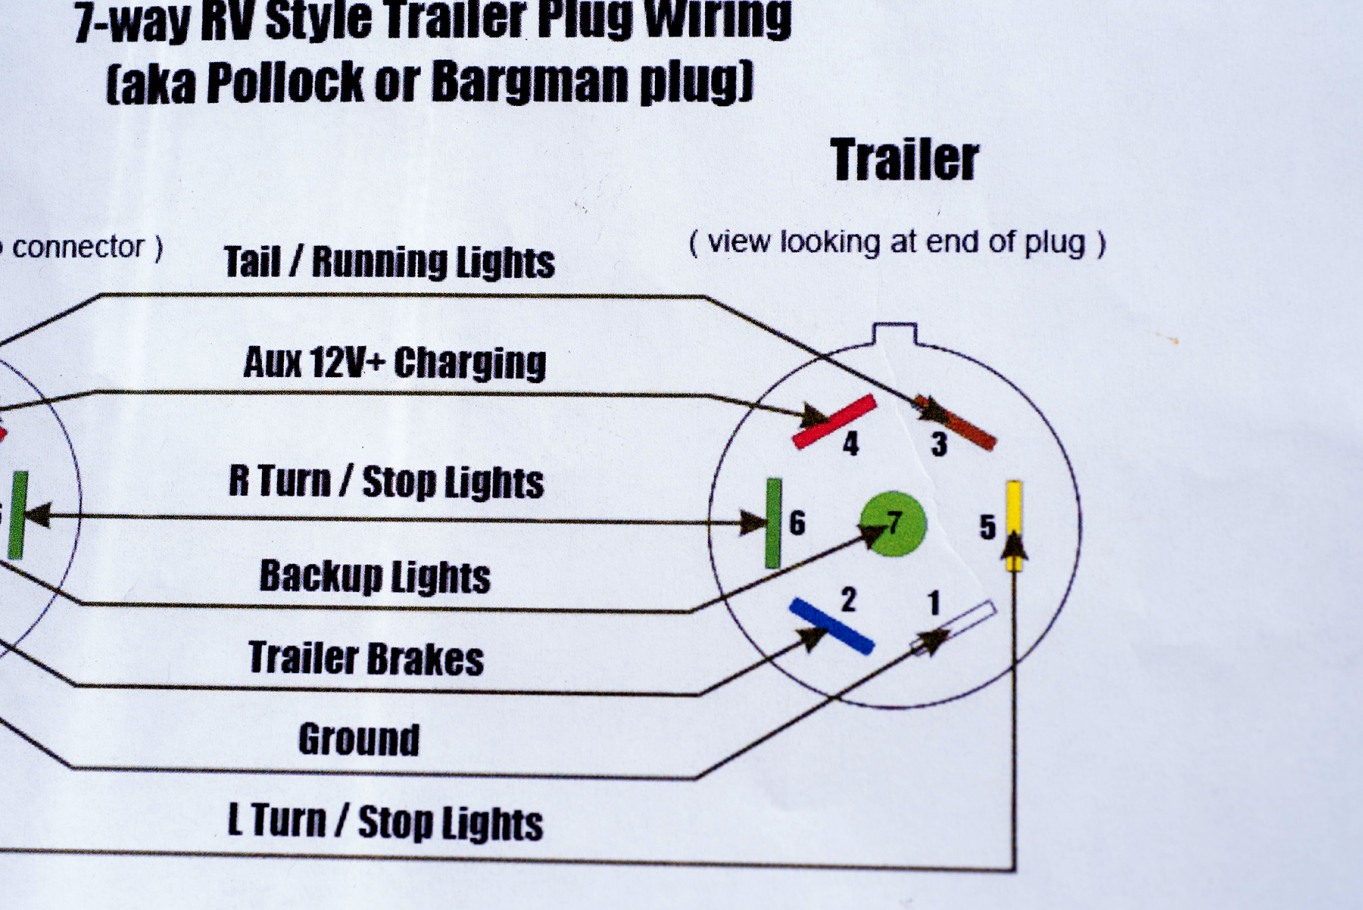 7 Round Trailer Wiring Diagram - Wiring Diagrams Hubs - 7 Way Round Trailer Wiring Diagram